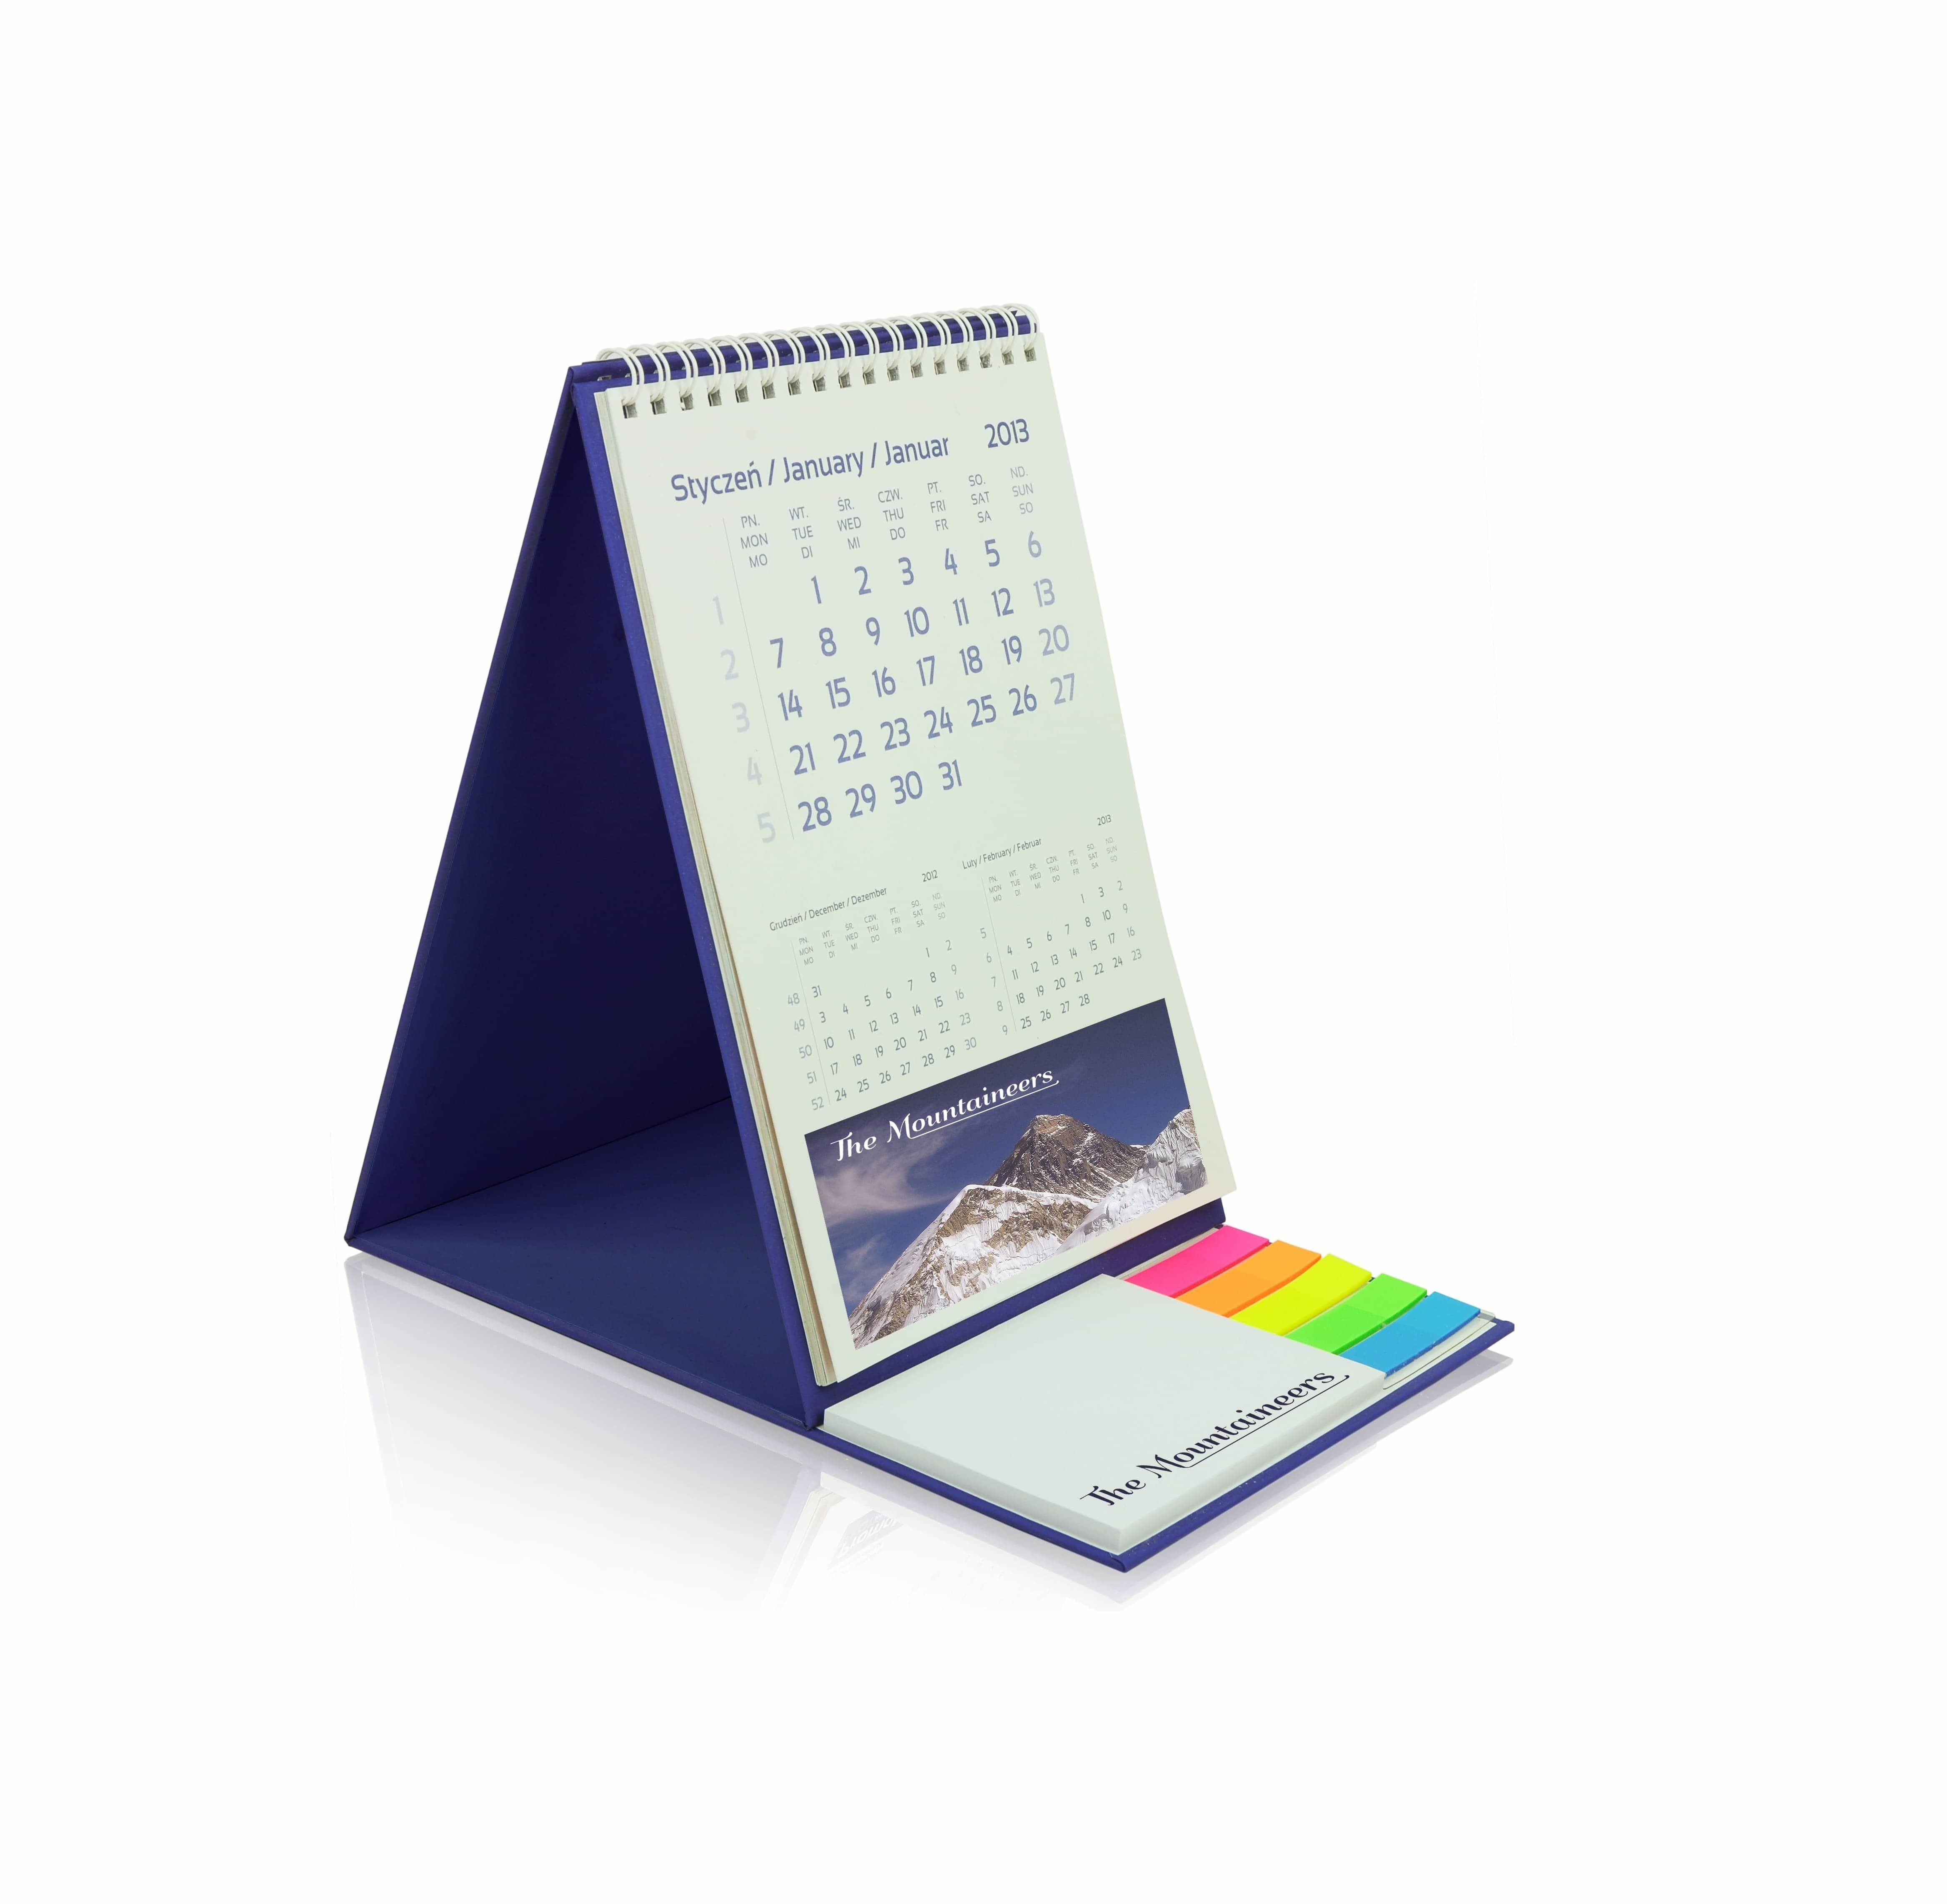 Custom printed desk calendar 2019 with notepads and index markers, www.ontimeprint.co.uk